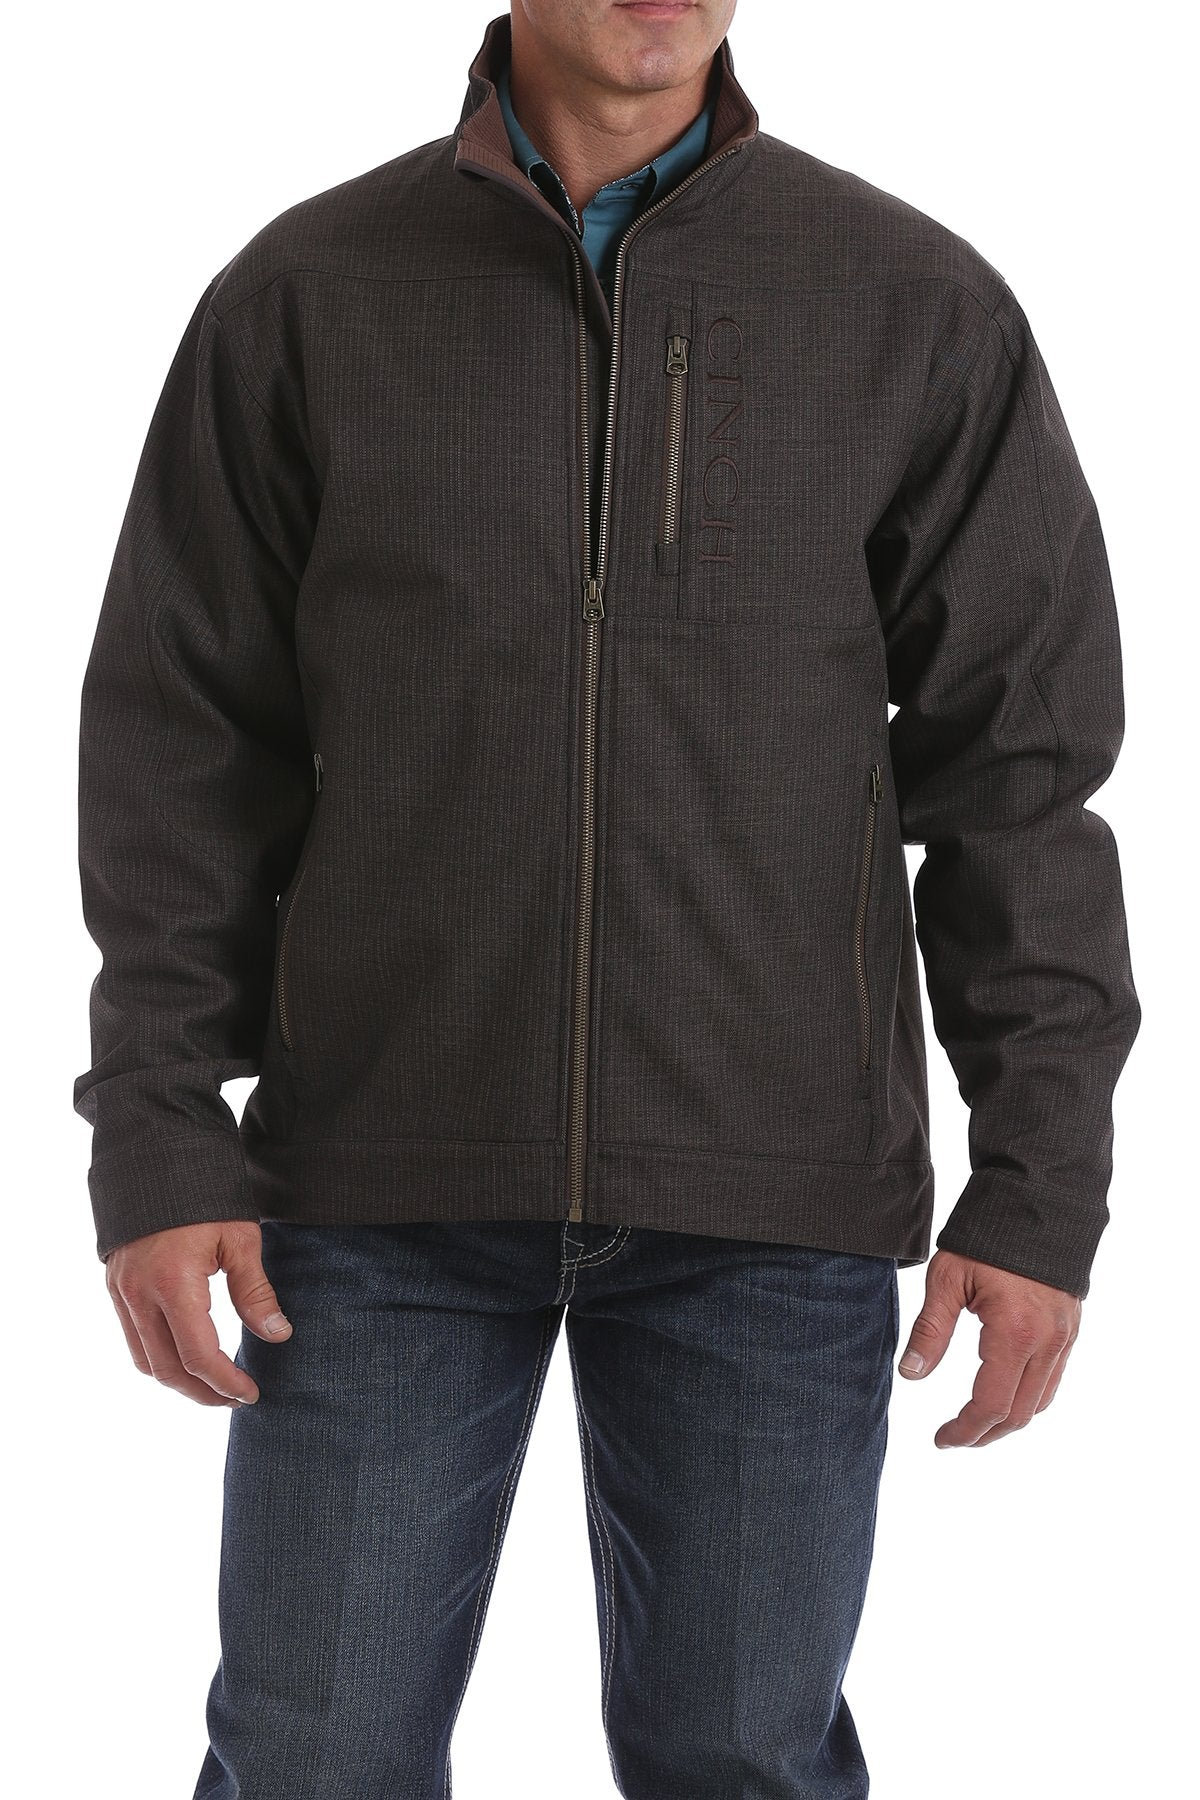 Cinch Chocolate Bonded Concealed Carry Men's Jacket